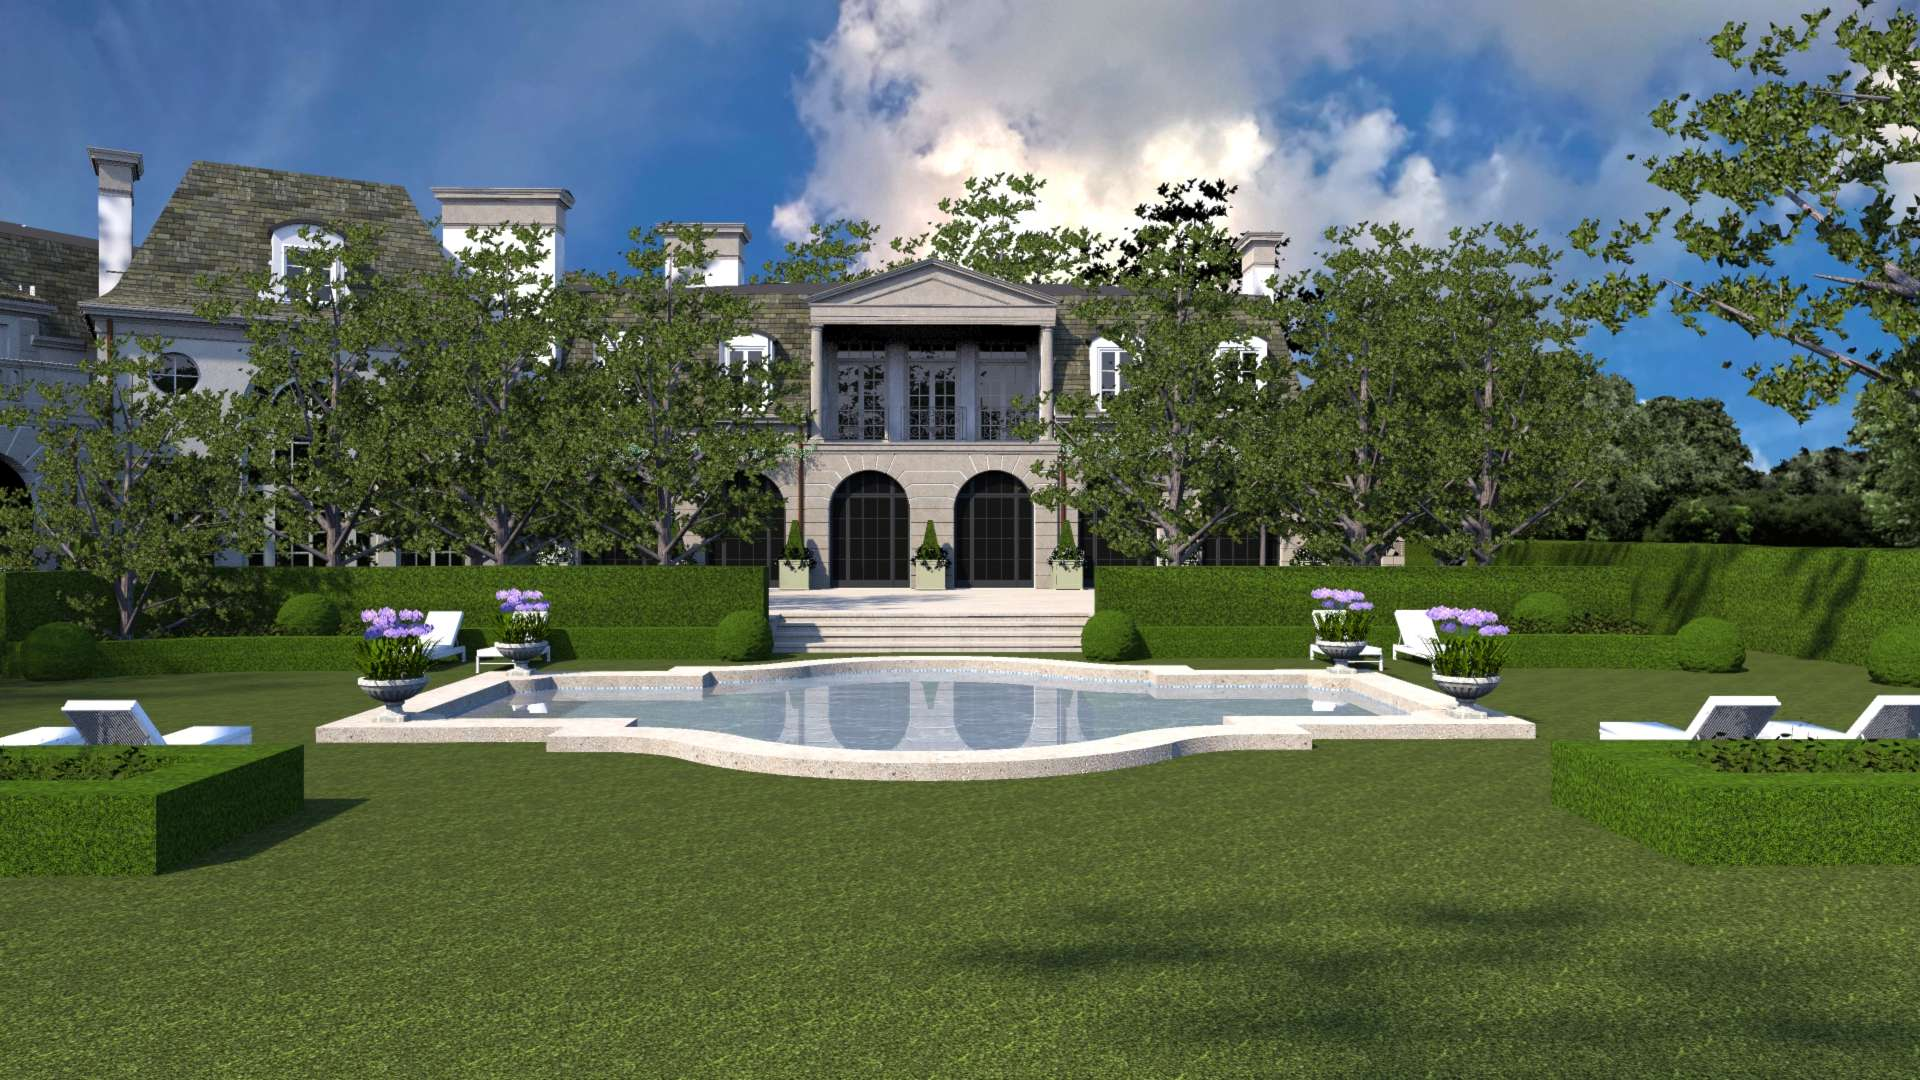 The swimming pool sits in the lawn area encompassed by holly and boxwood hedges.